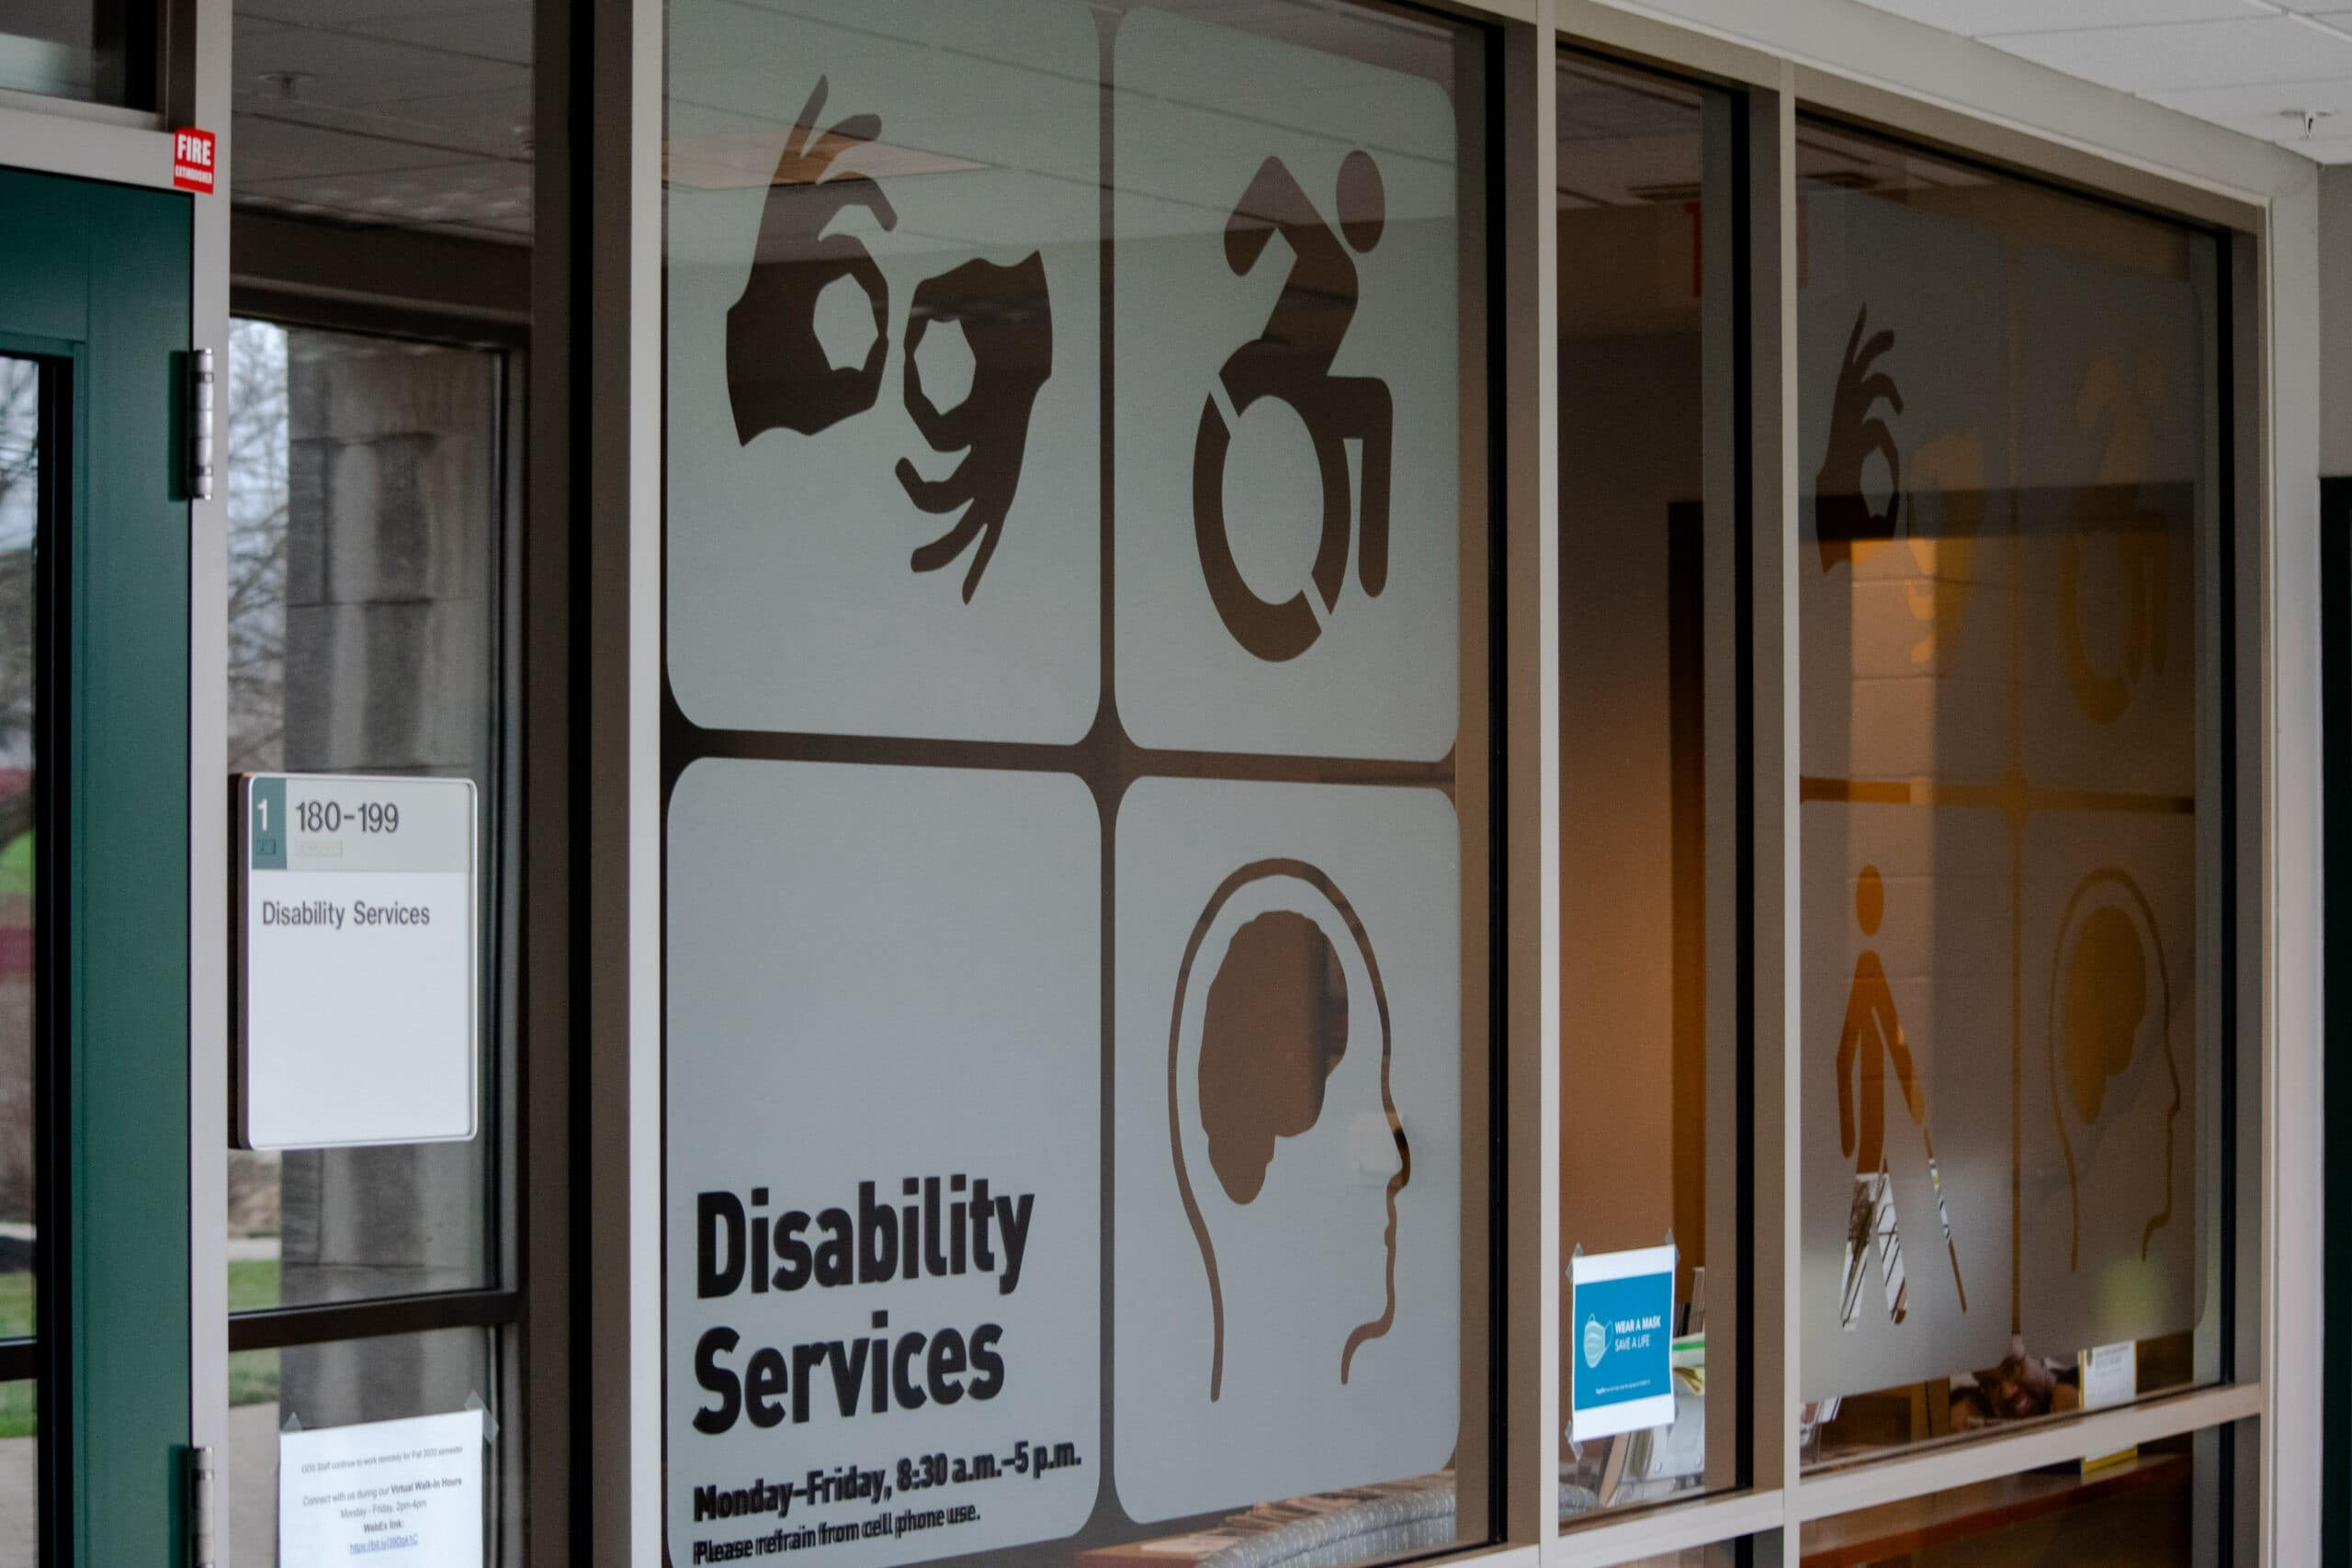 The Office of Disability Services at University Hall